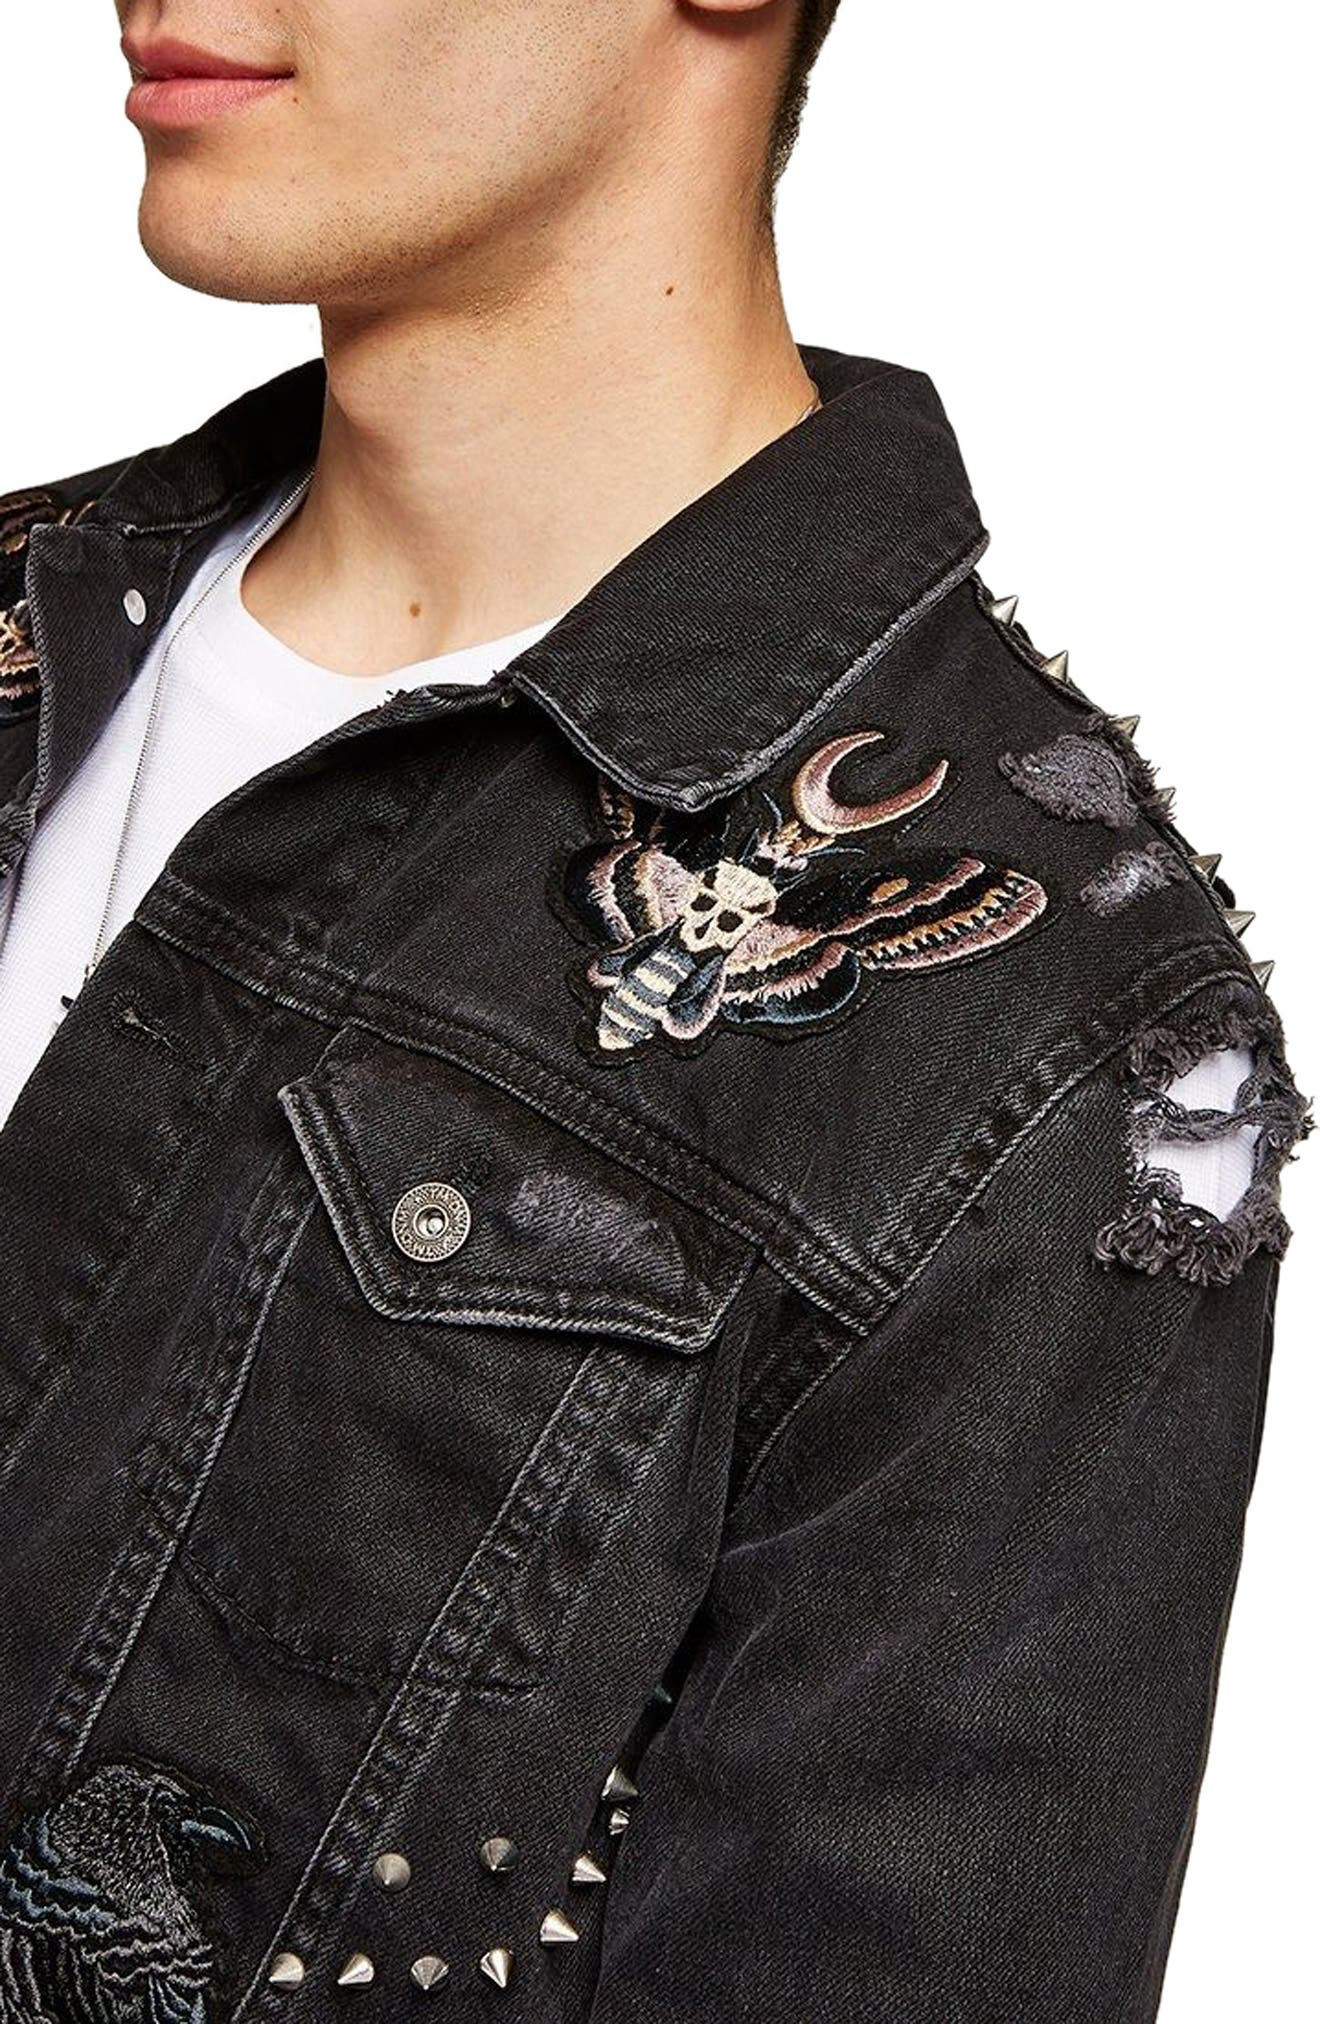 Sleepy Hollow Slim Fit Denim Jacket with Patches,                             Alternate thumbnail 3, color,                             Black Multi